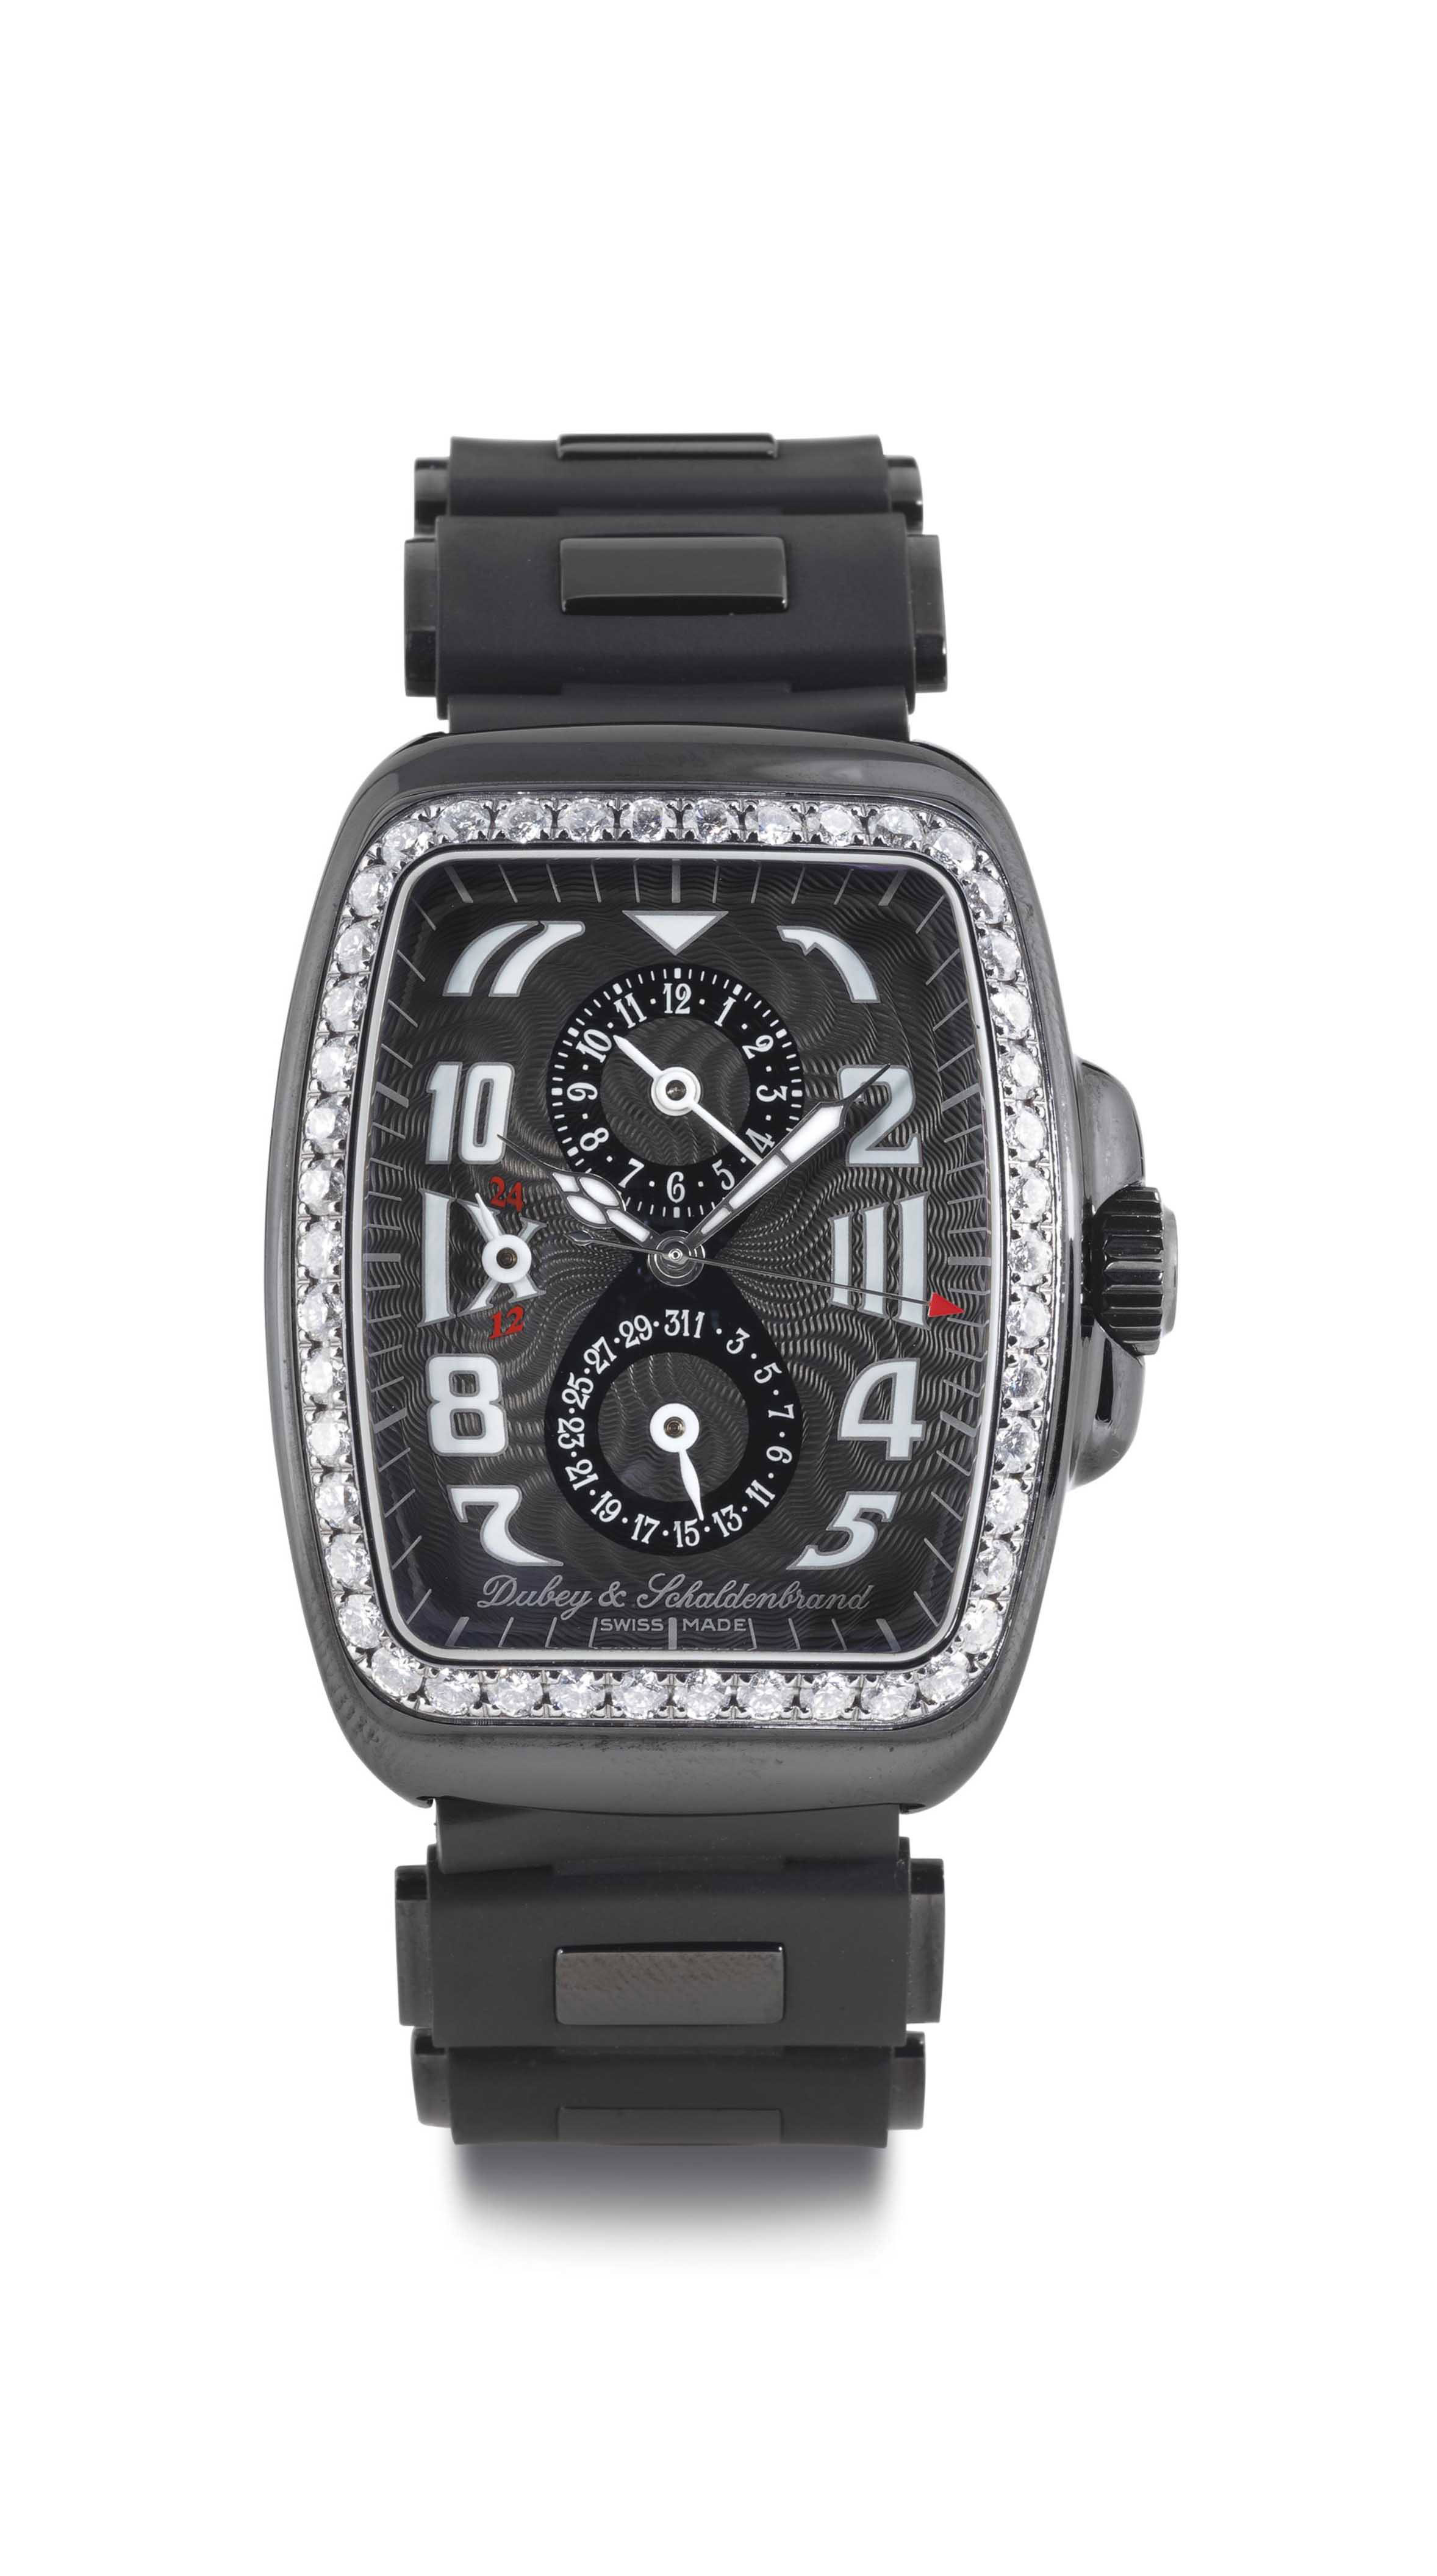 DUBEY & SCHALDENBRAND. A LIMITED EDITION BLACK CERAMIC, STEEL AND DIAMOND TONNEAU AUTOMATIC DUAL TIME WRISTWATCH WITH DATE, DAY/NIGHT INDICATOR AND BLACK CERAMIC AND RUBBER BRACELET